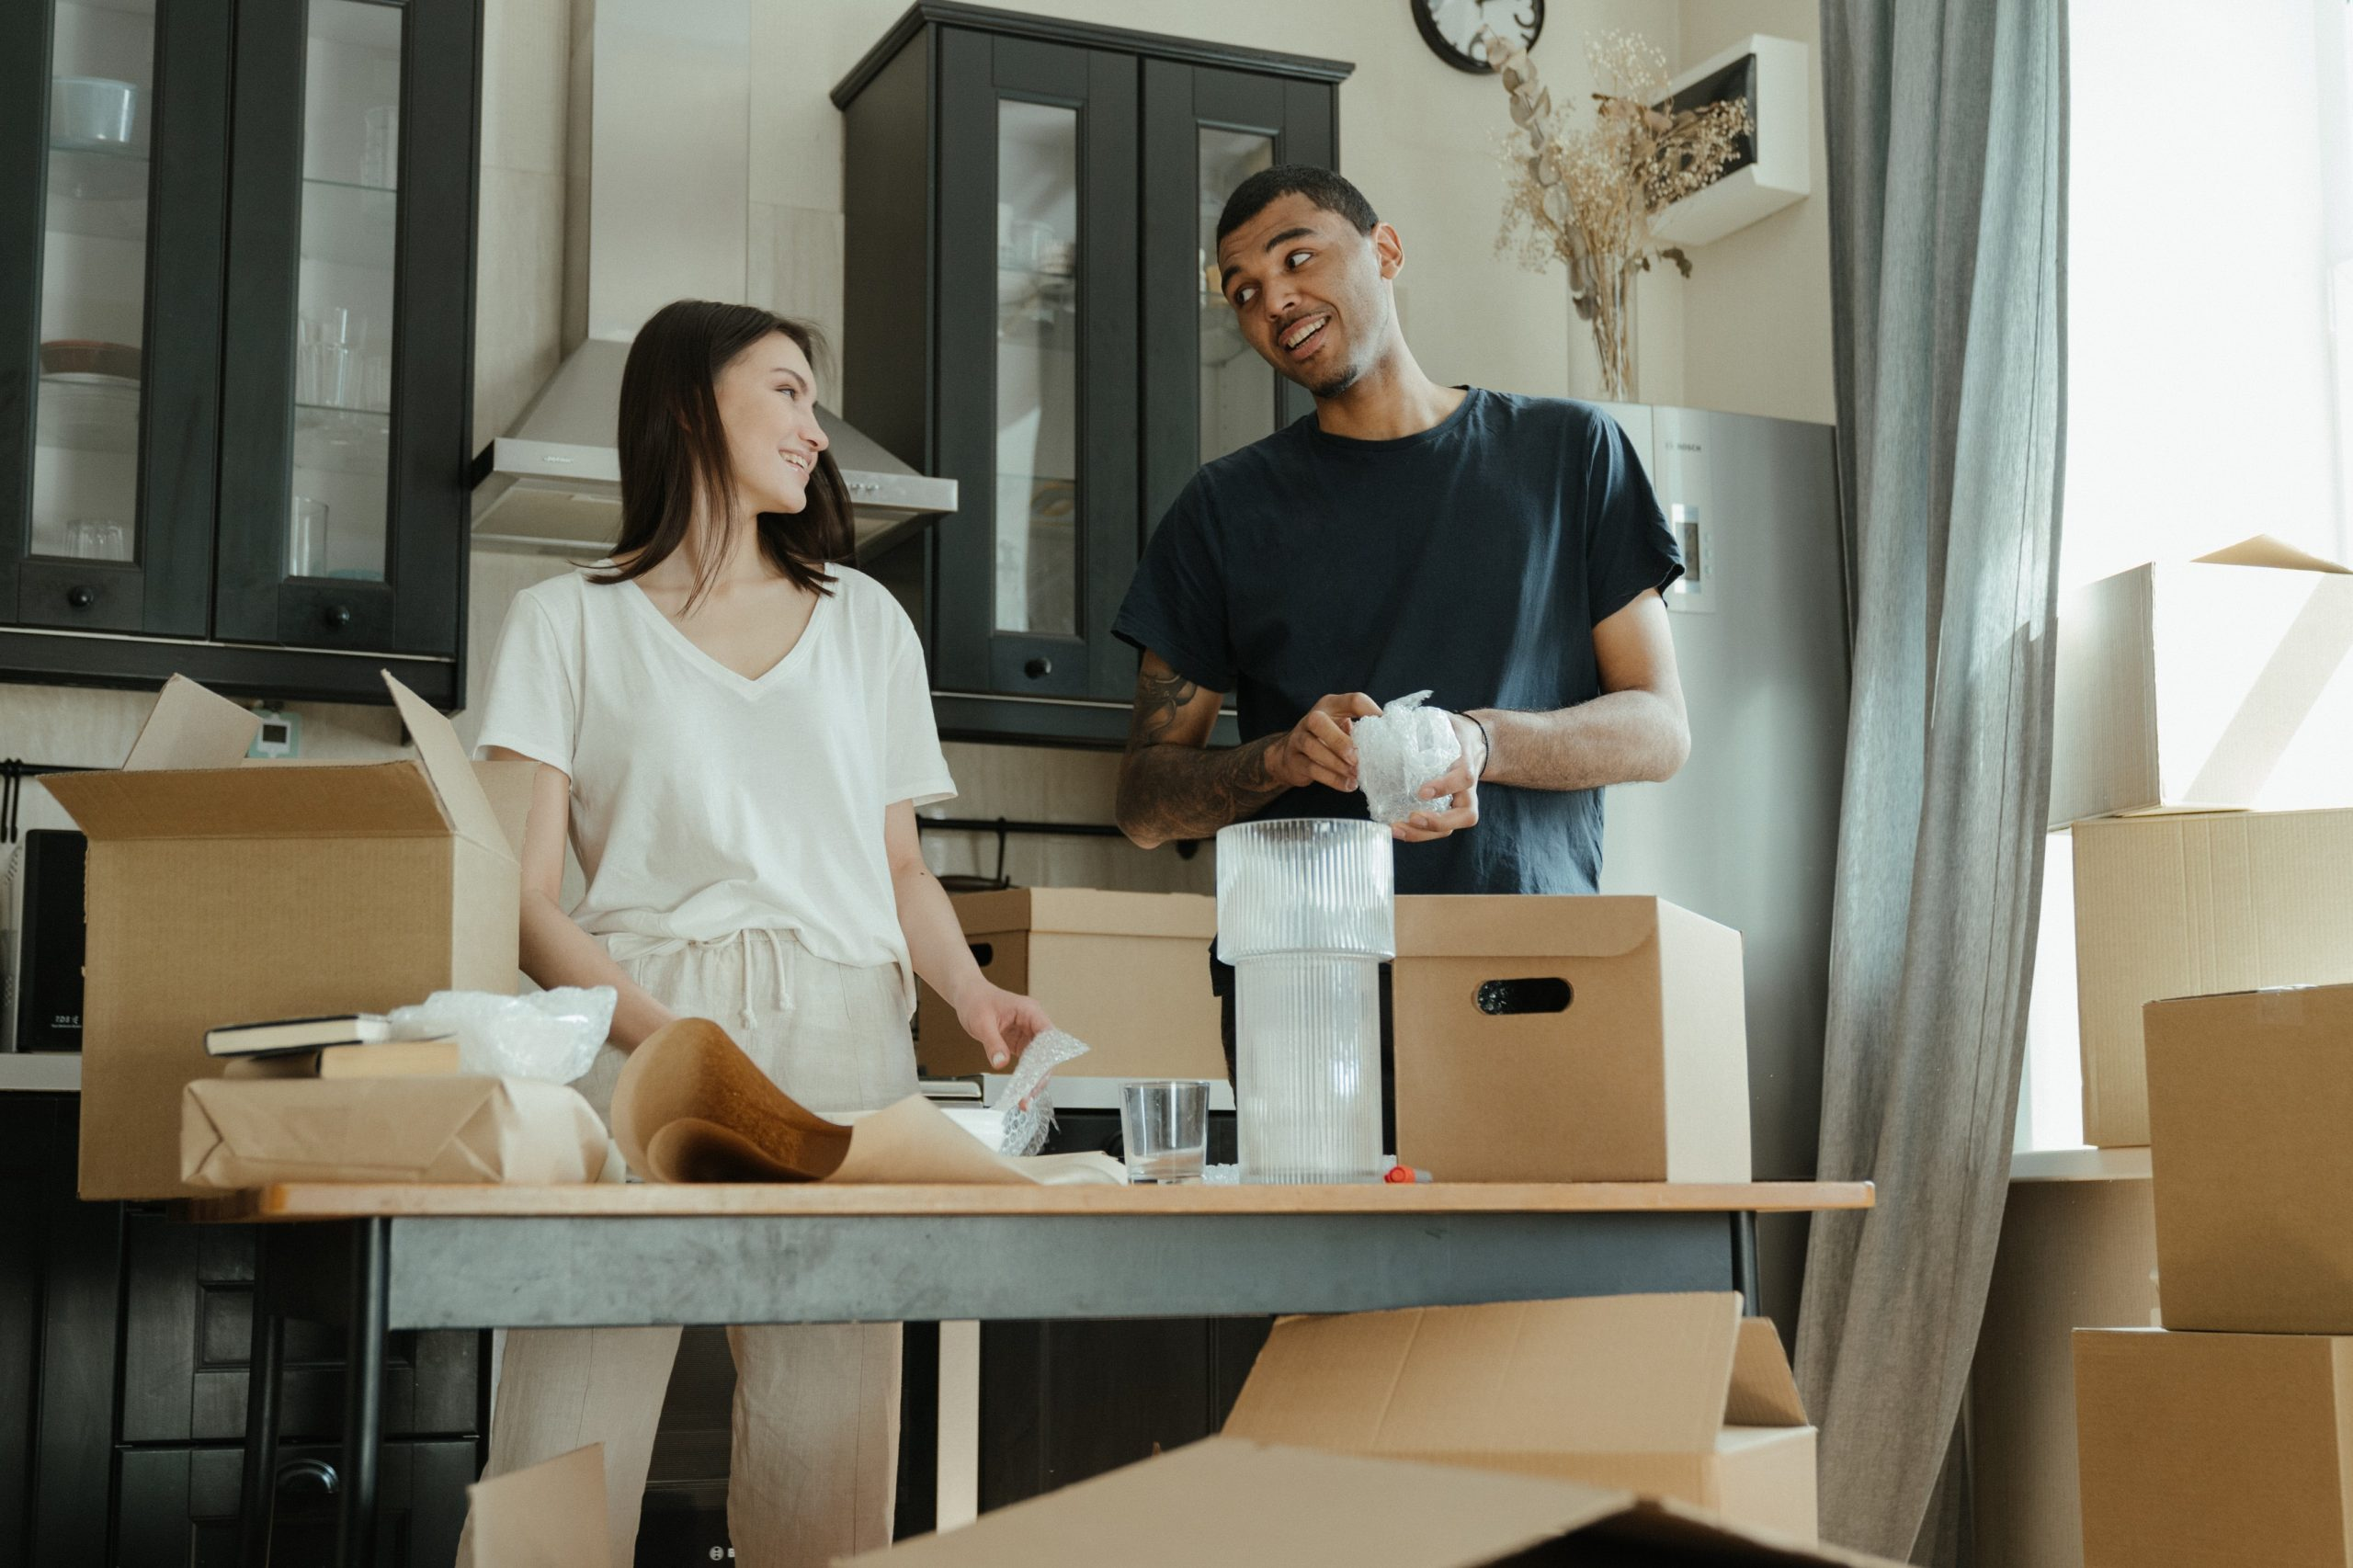 woman and man packing boxes for move